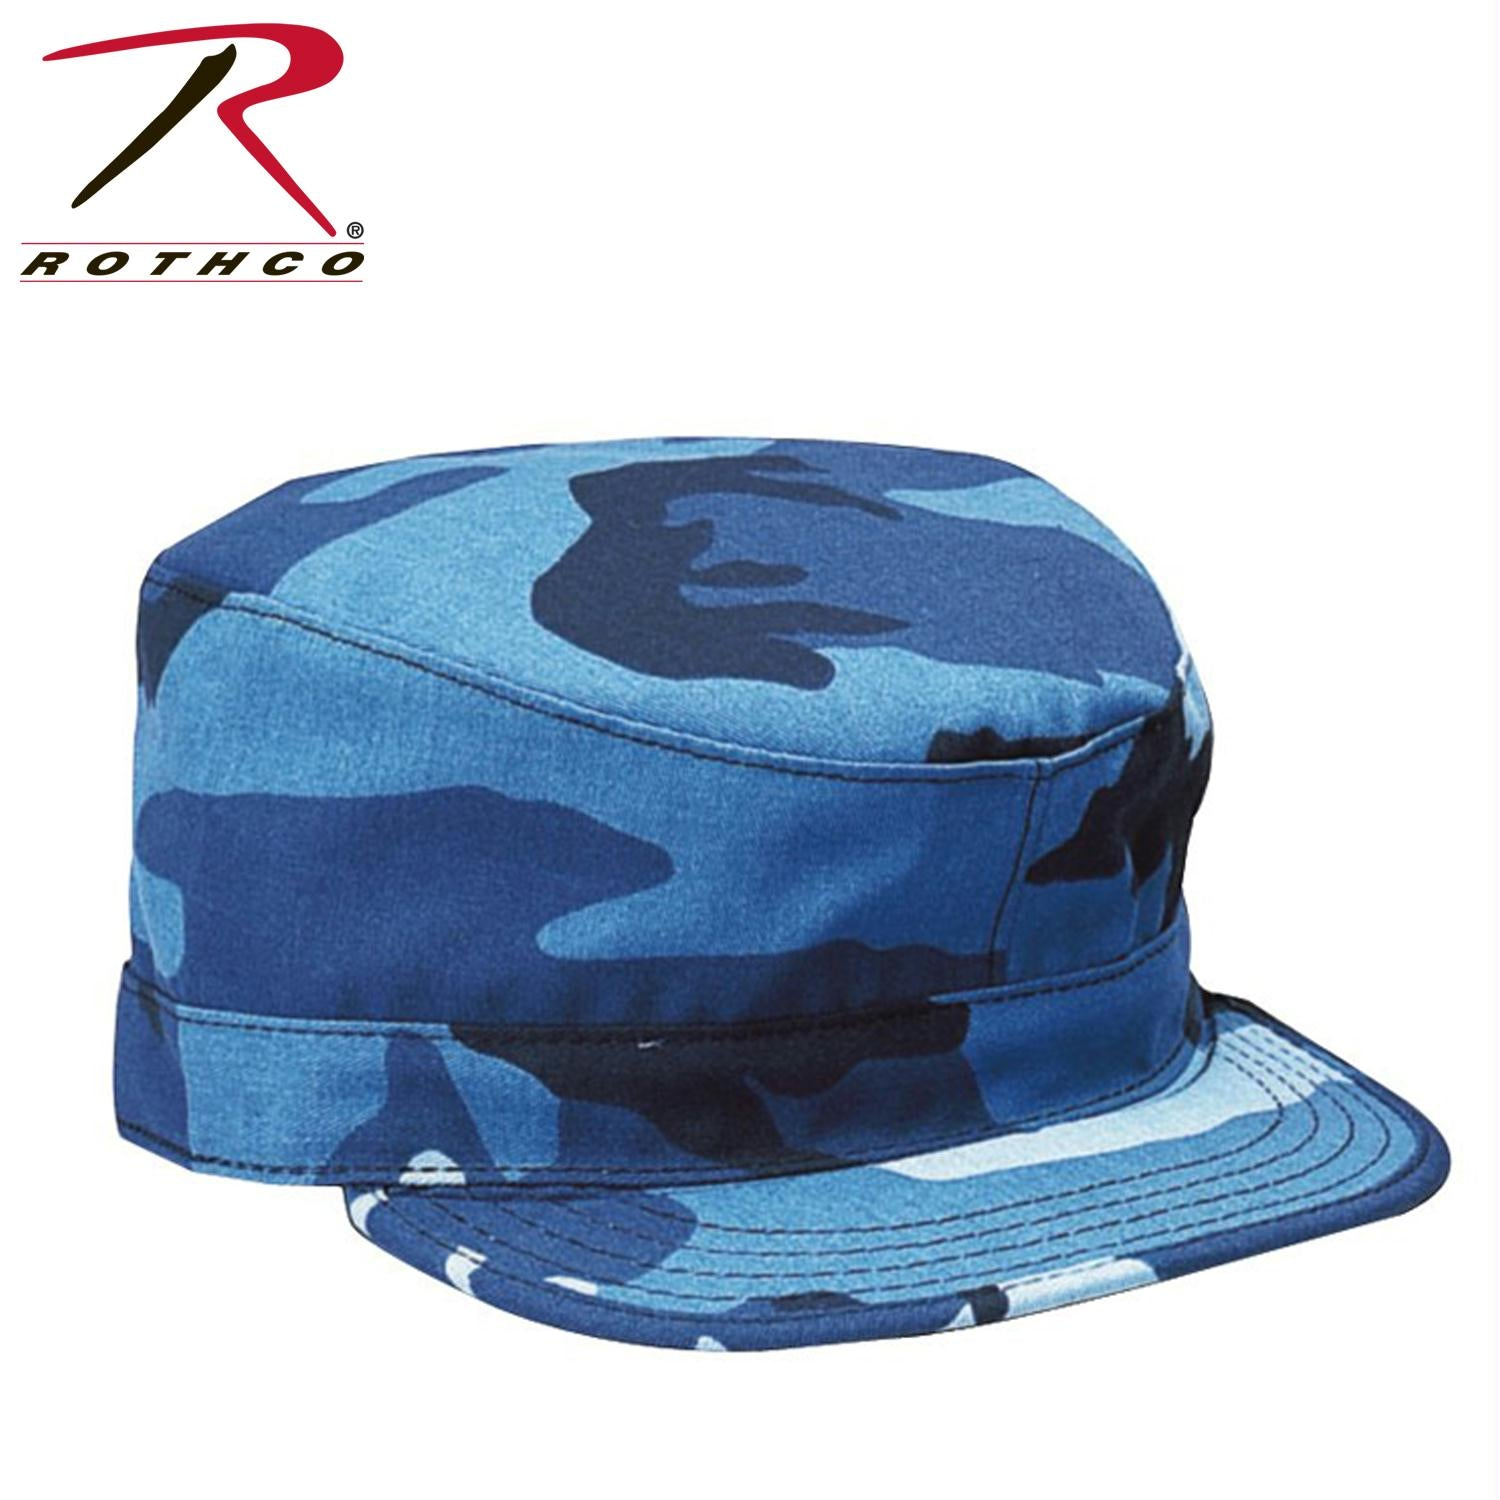 Rothco Camo Fatigue Caps - Sky Blue Camo / L